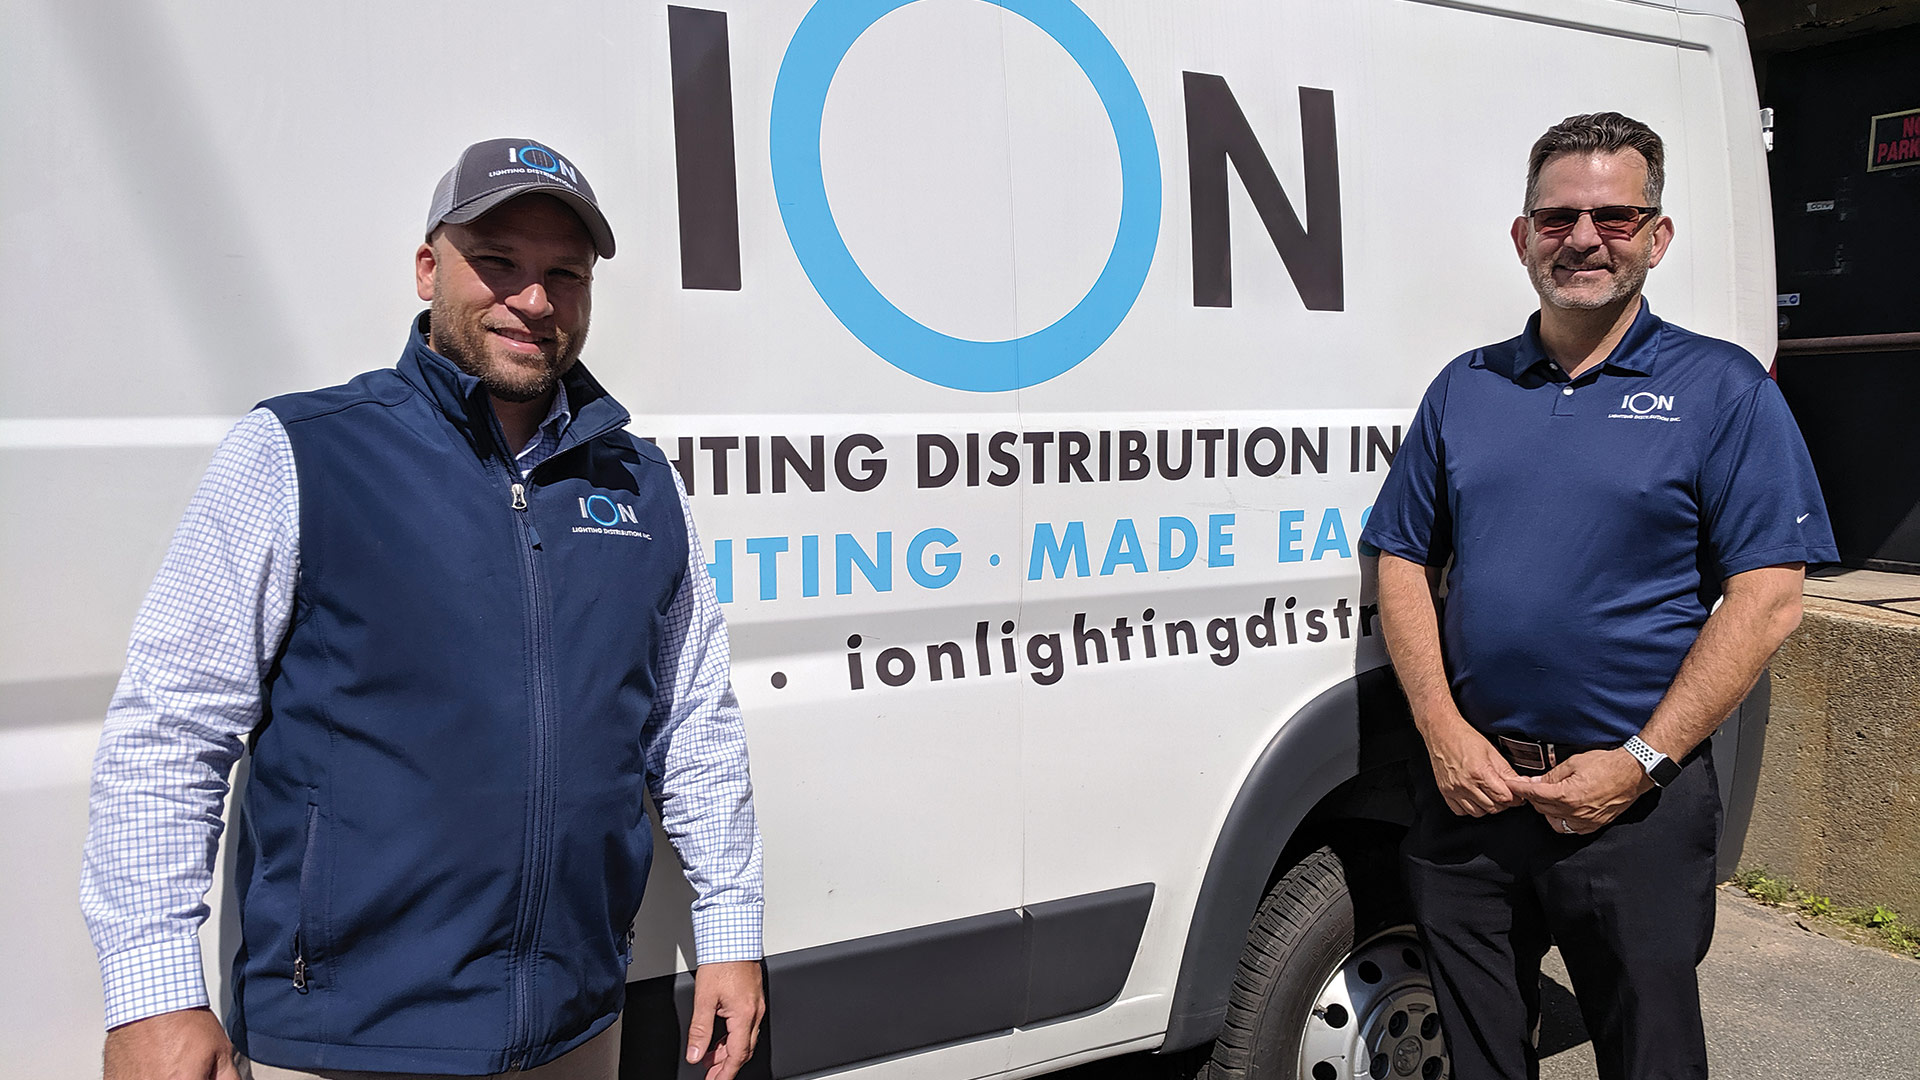 Ion has a presence throughout Southern New England and New York City